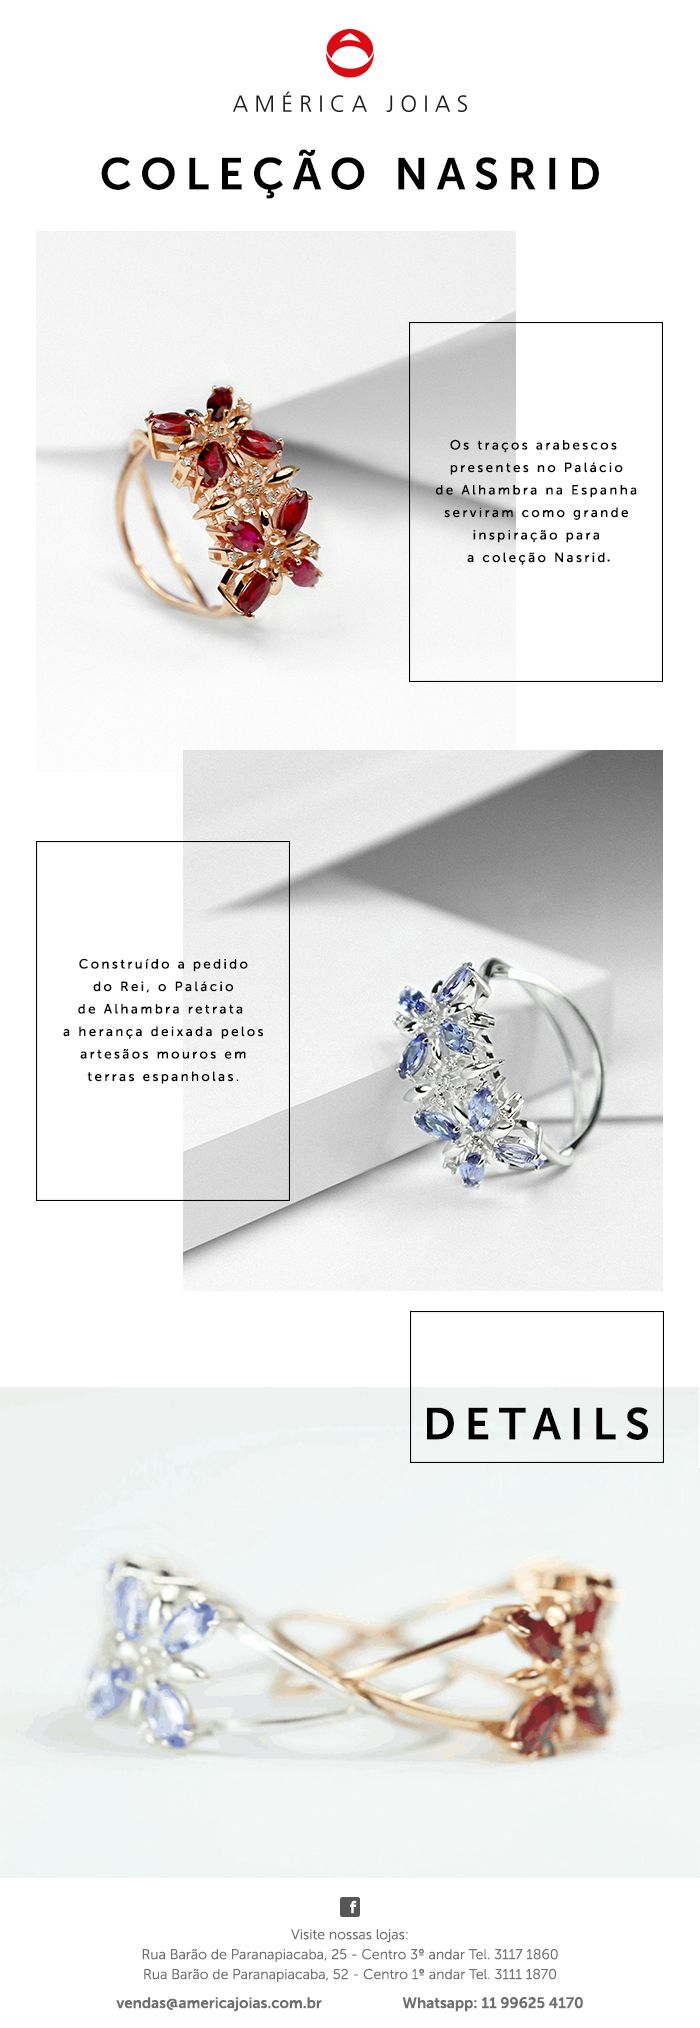 Email Marketing Jewelry #email #marketing #joias #jewelry #layout #design #nasrid #e-mailmarketing